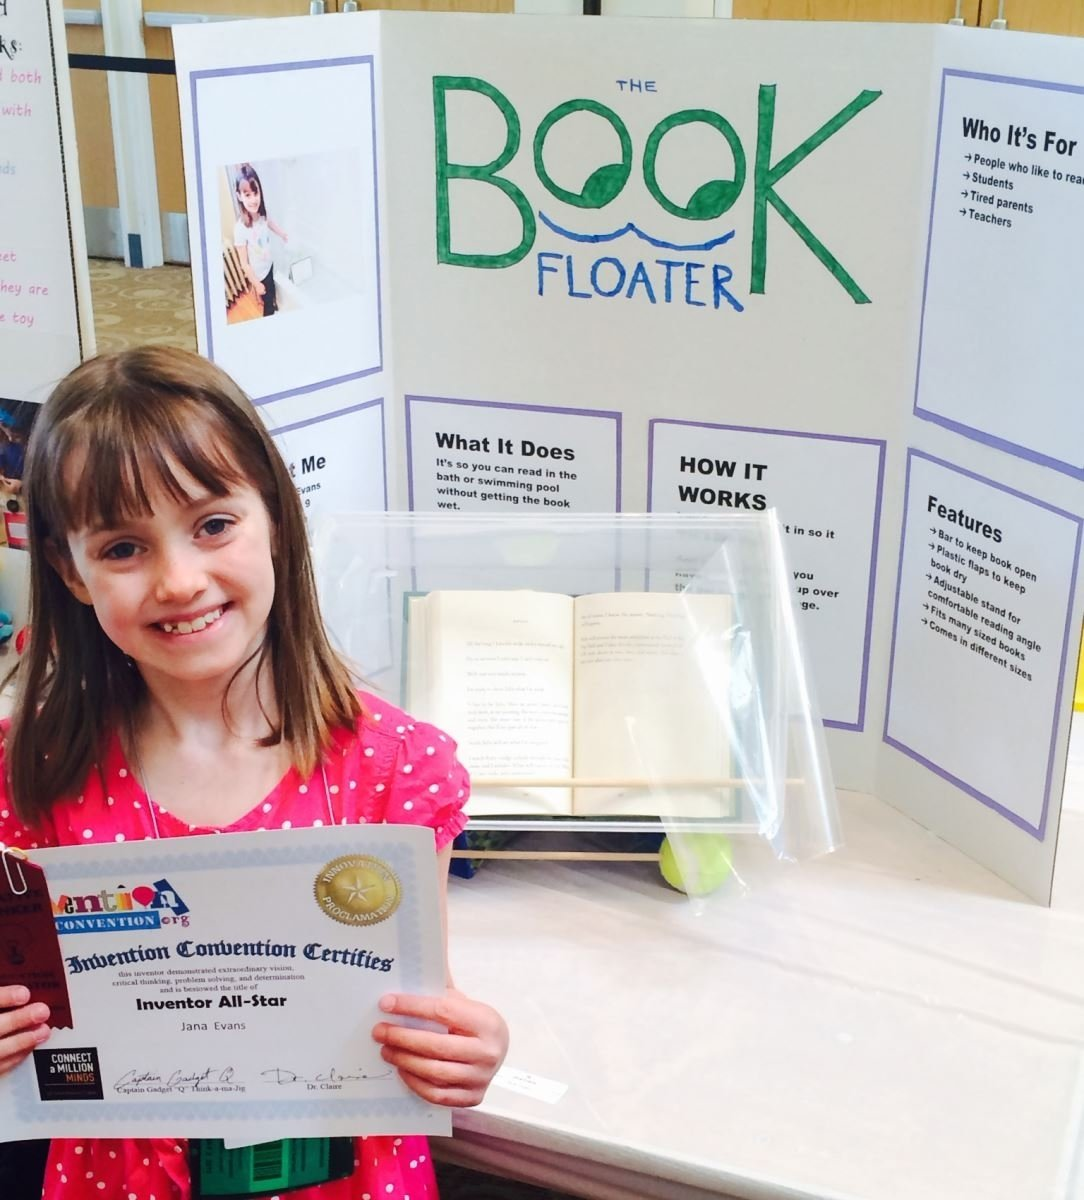 10 Most Popular 3Rd Grade Invention Project Ideas invention convention winner lincoln elementary school 1 2021